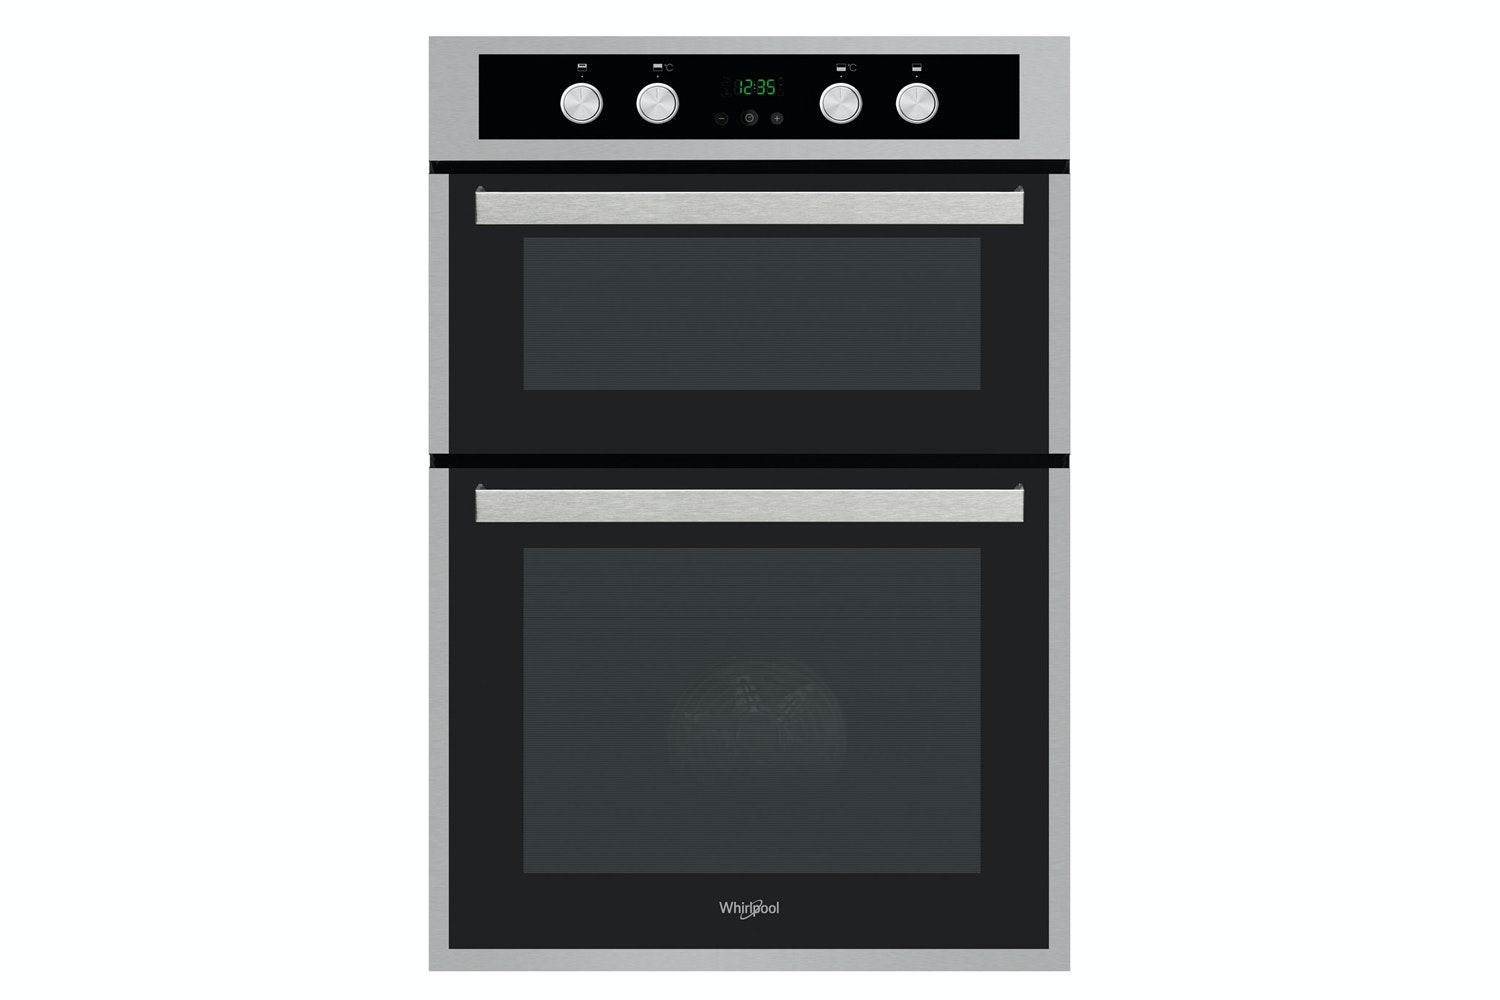 Whirlpool Built-in Double Oven | AKL309IX